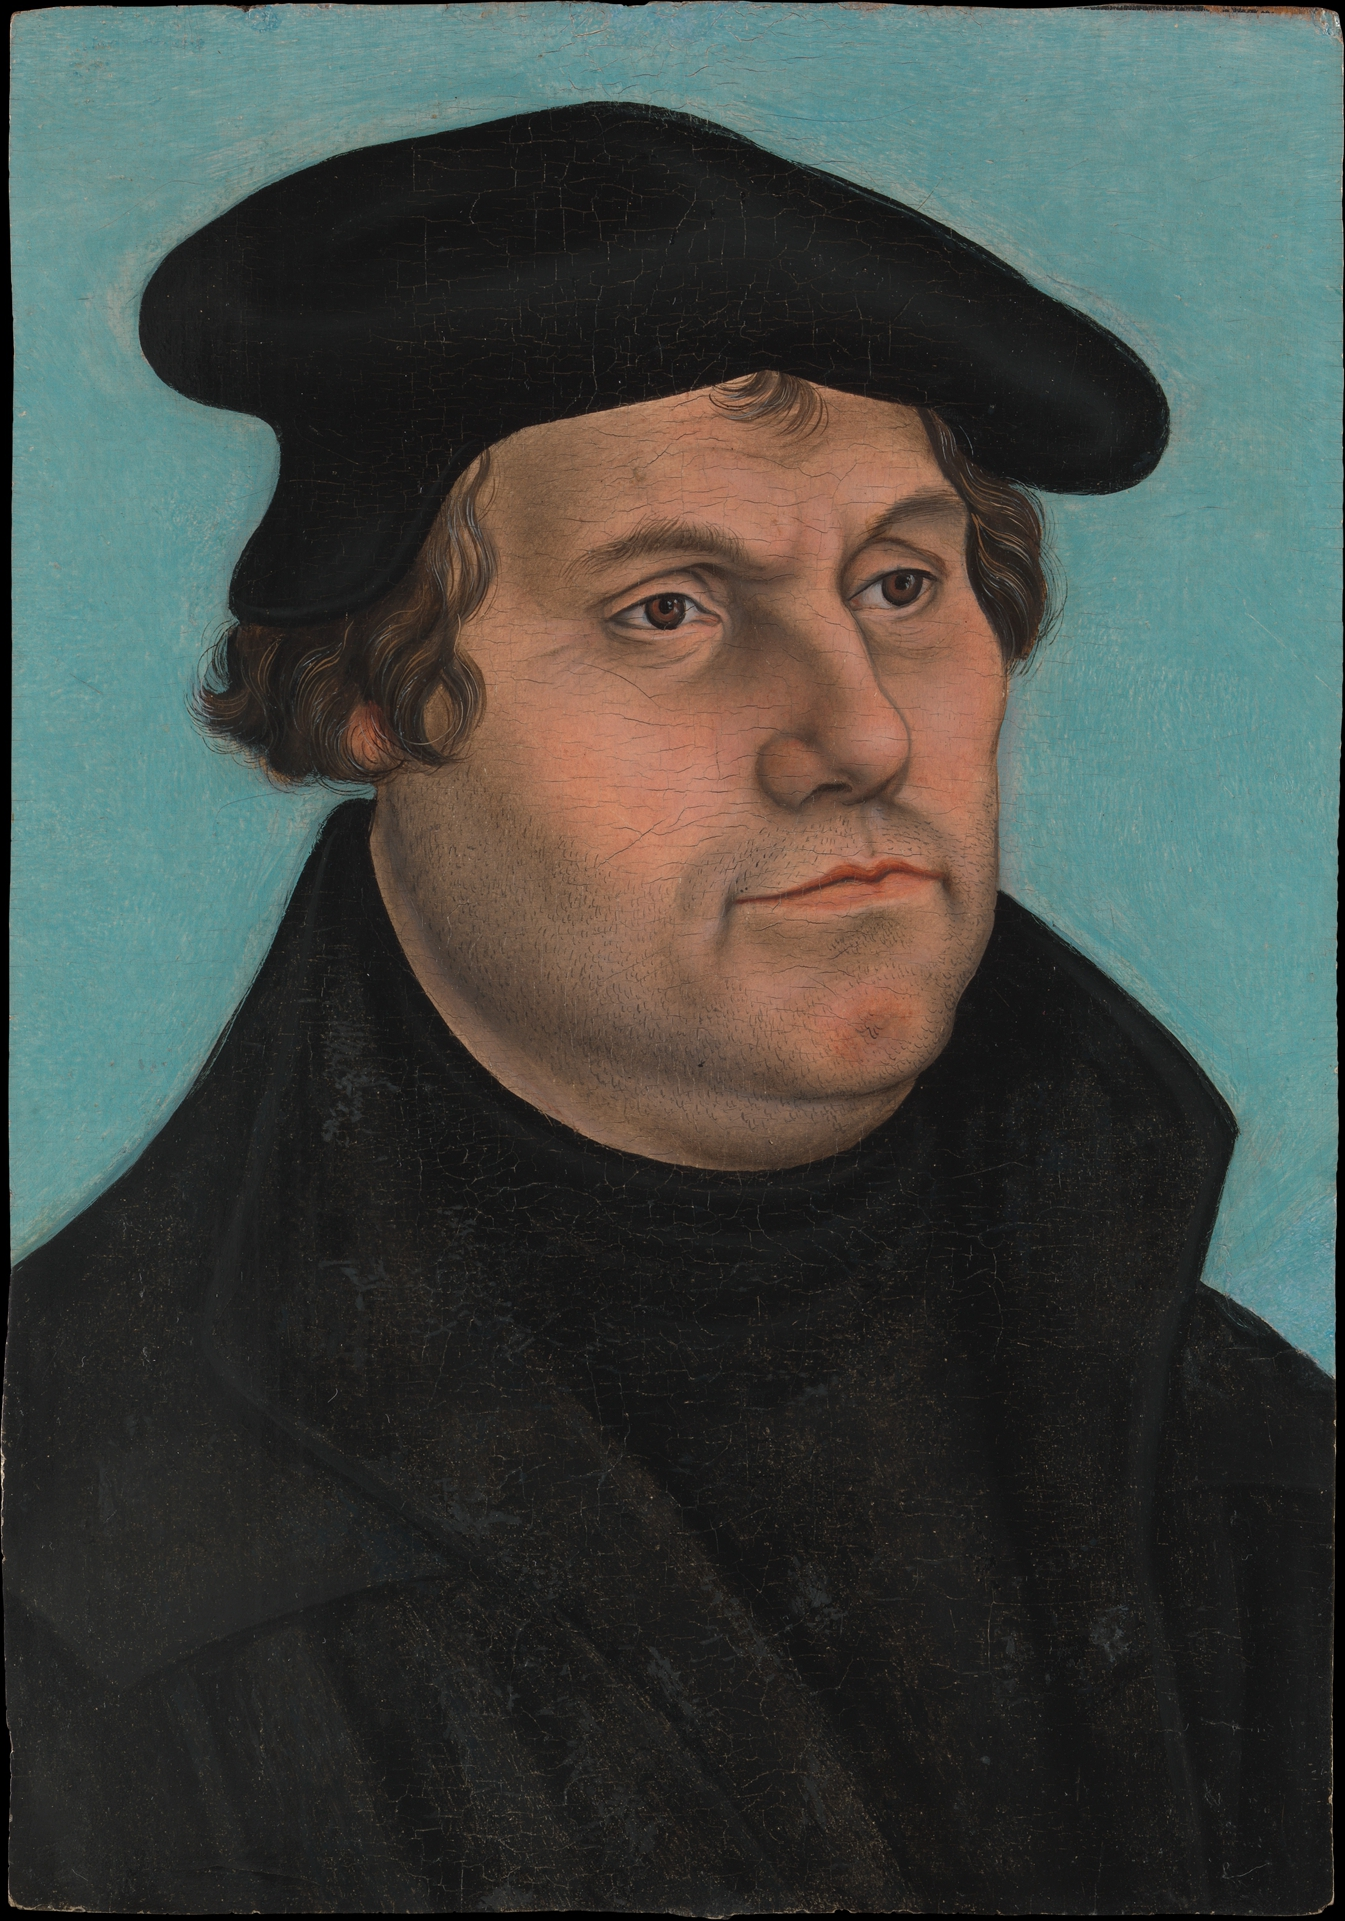 Poet Martin Luther